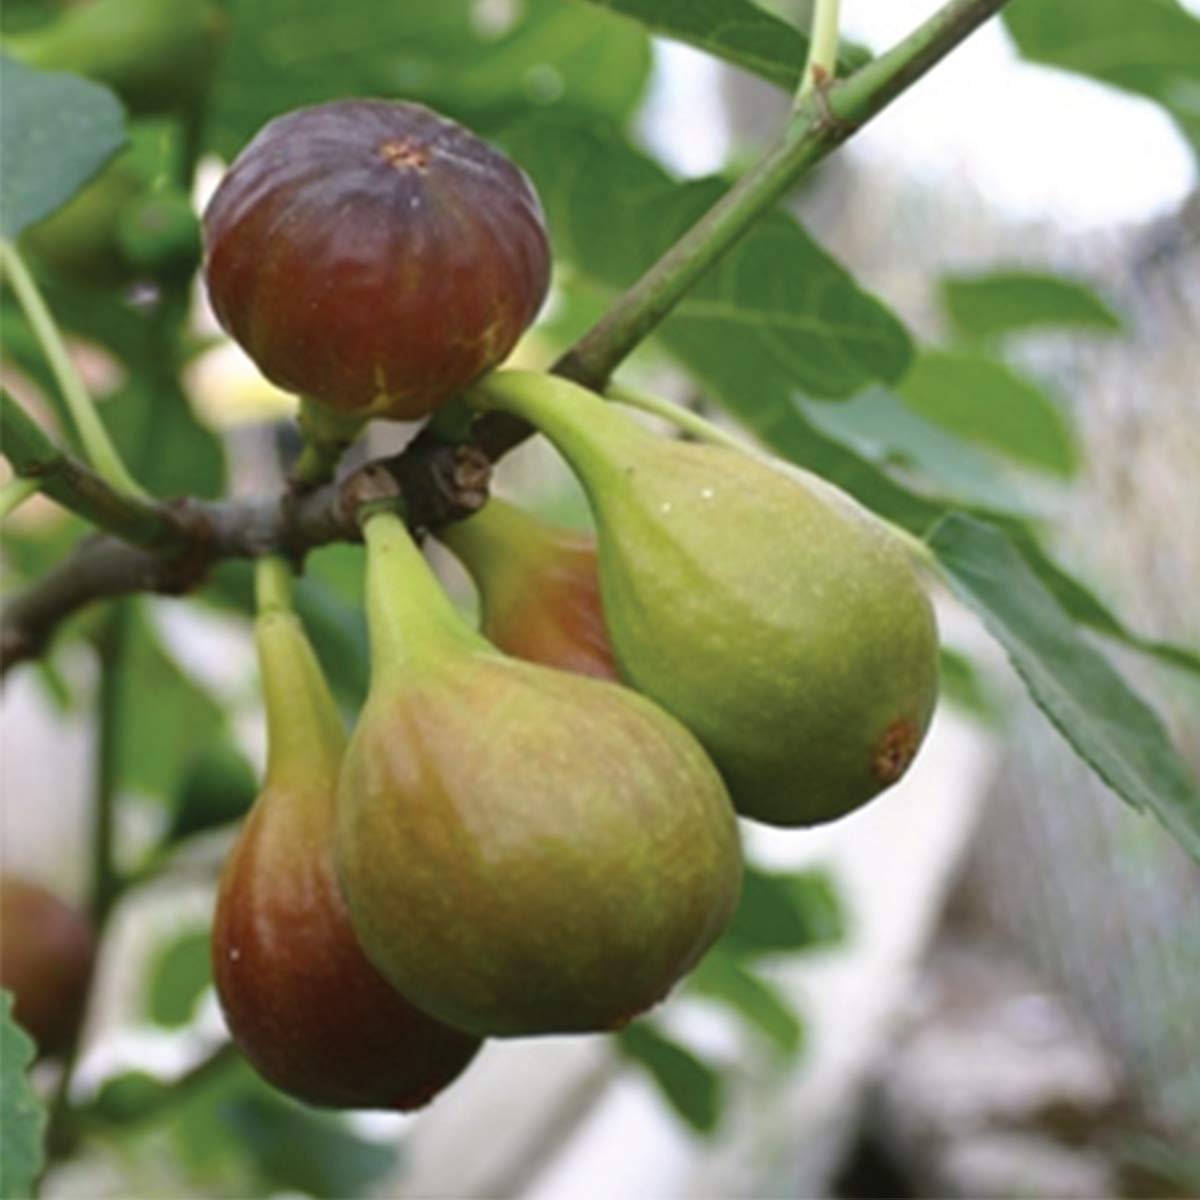 Burpee Chicago Hardy' Fig Fruit, 1 Plant by Burpee (Image #1)